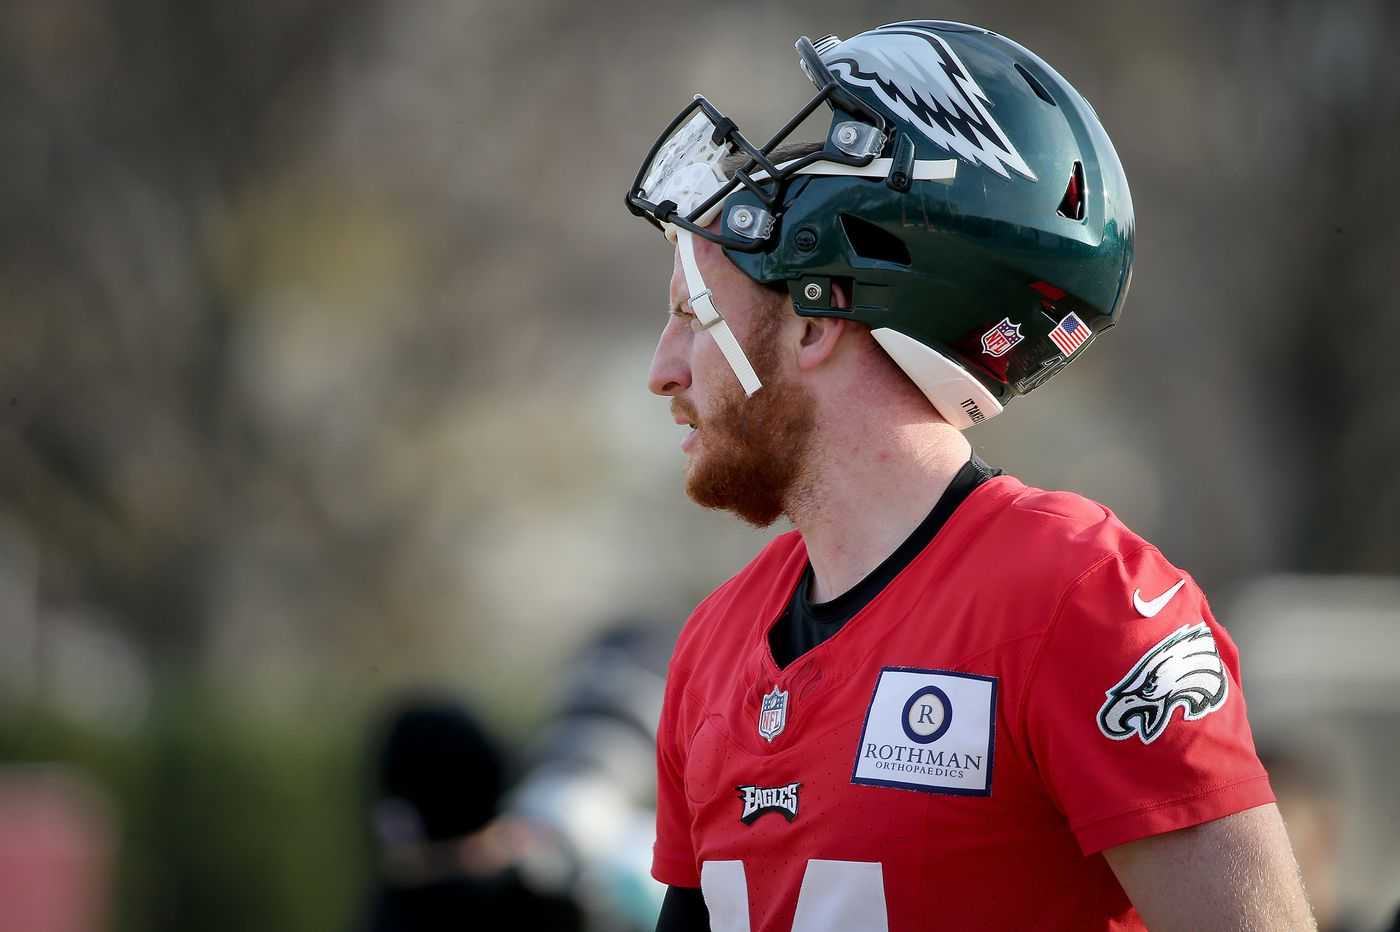 Doug Pederson hesitates when asked if Carson Wentz is still Eagles' starting QB